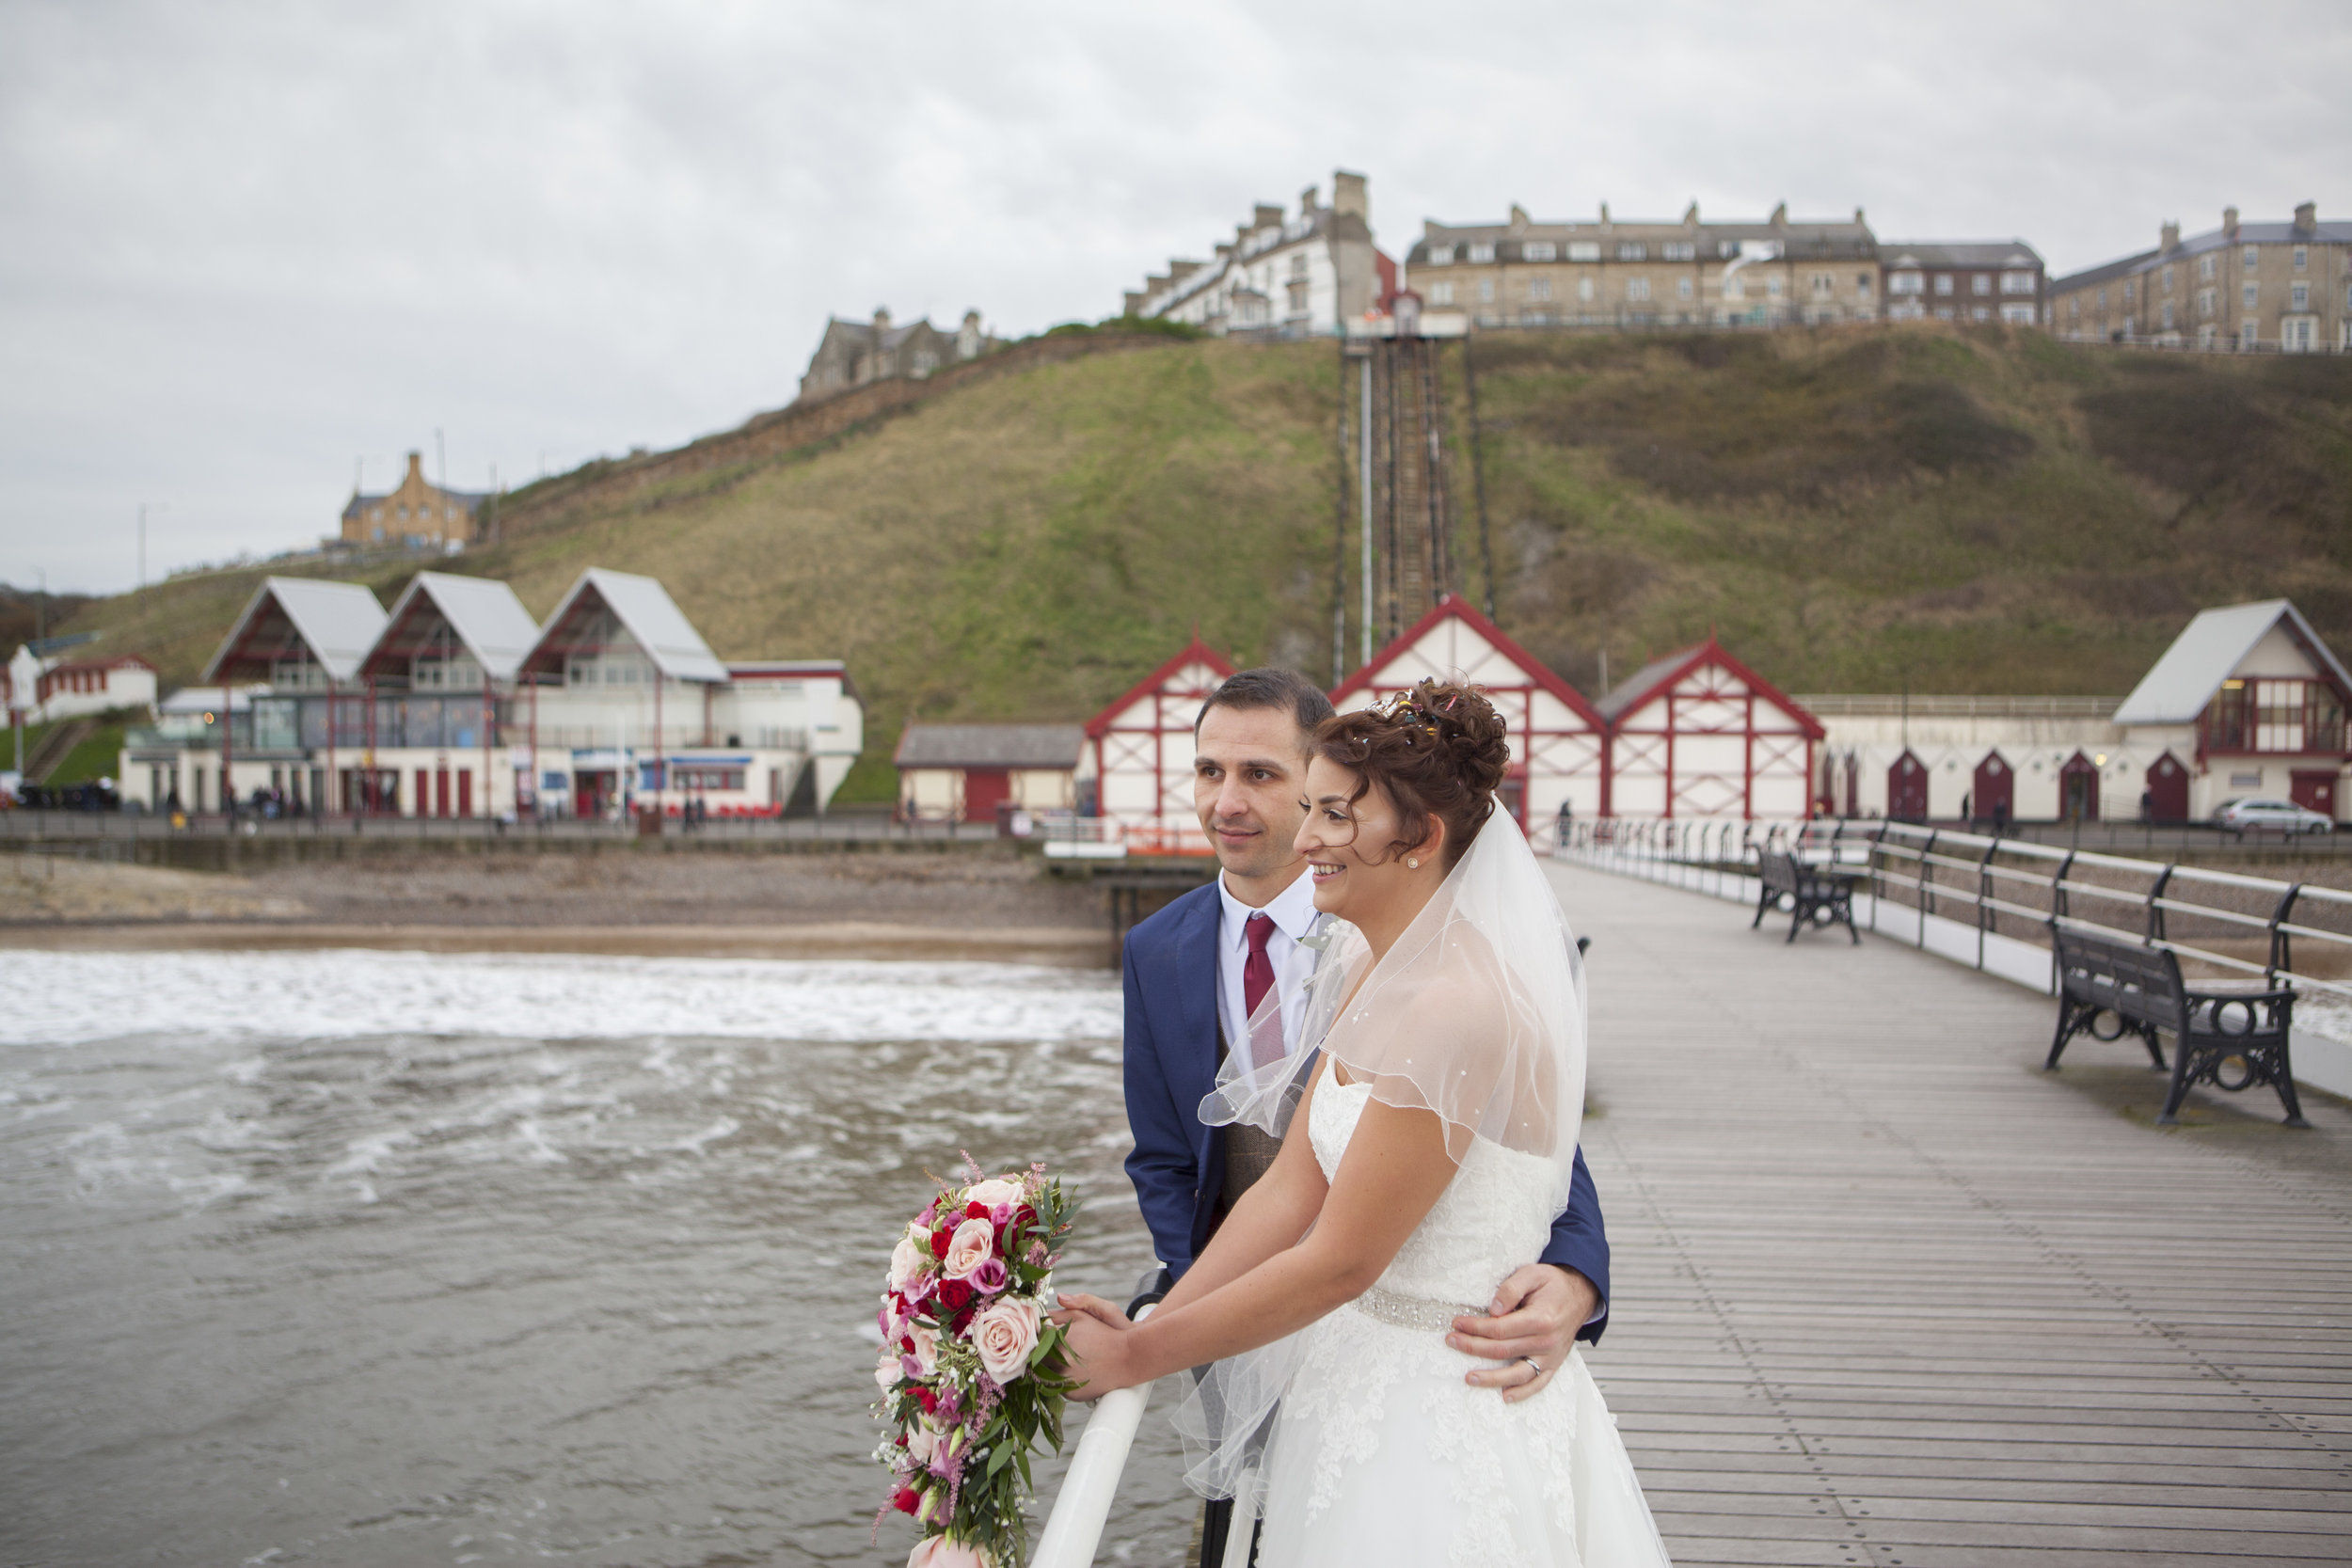 Laura & Darren, The Spa Hotel, Saltburn, 17_11_17_215.jpg